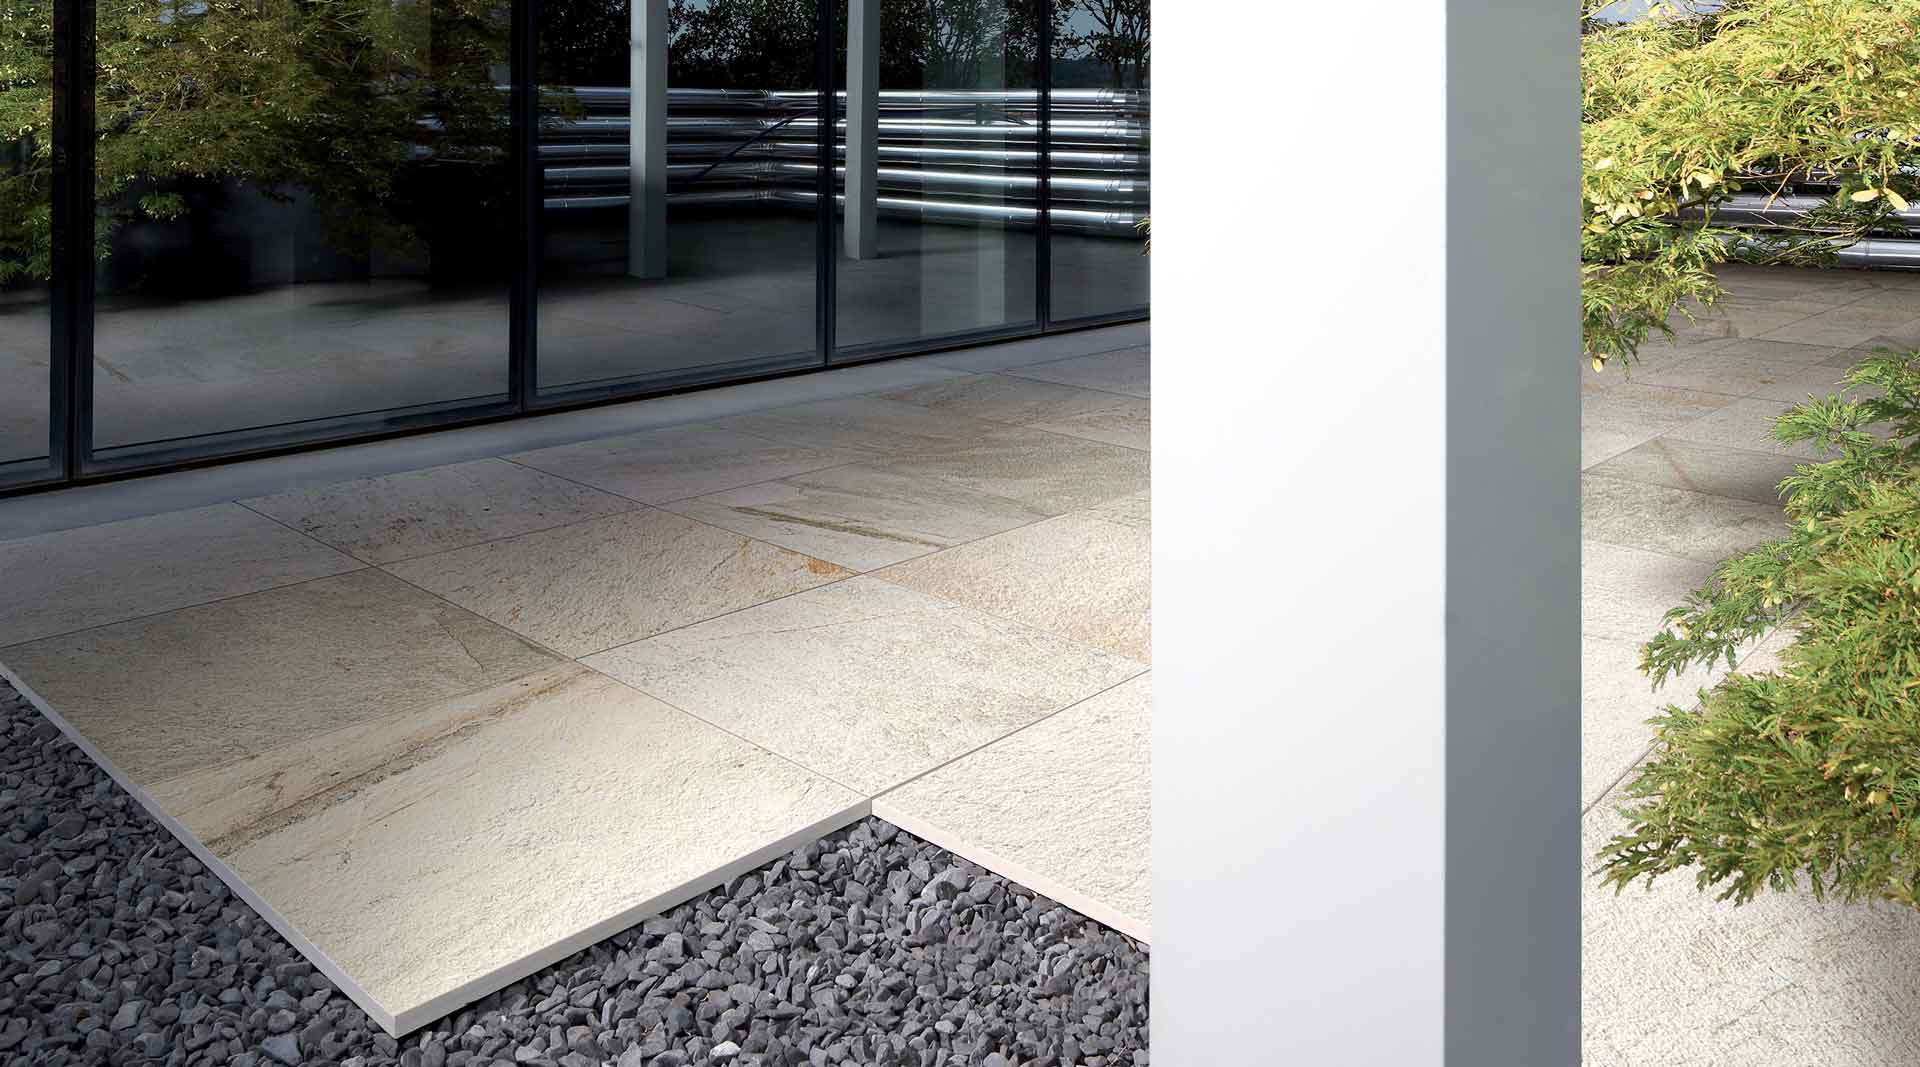 How to lay outdoor tiles on gravel or sand with its 20 mm material thickness it is ideal for installation on gravel and sand the system is extremely easy to install and can be freely repositioned dailygadgetfo Gallery